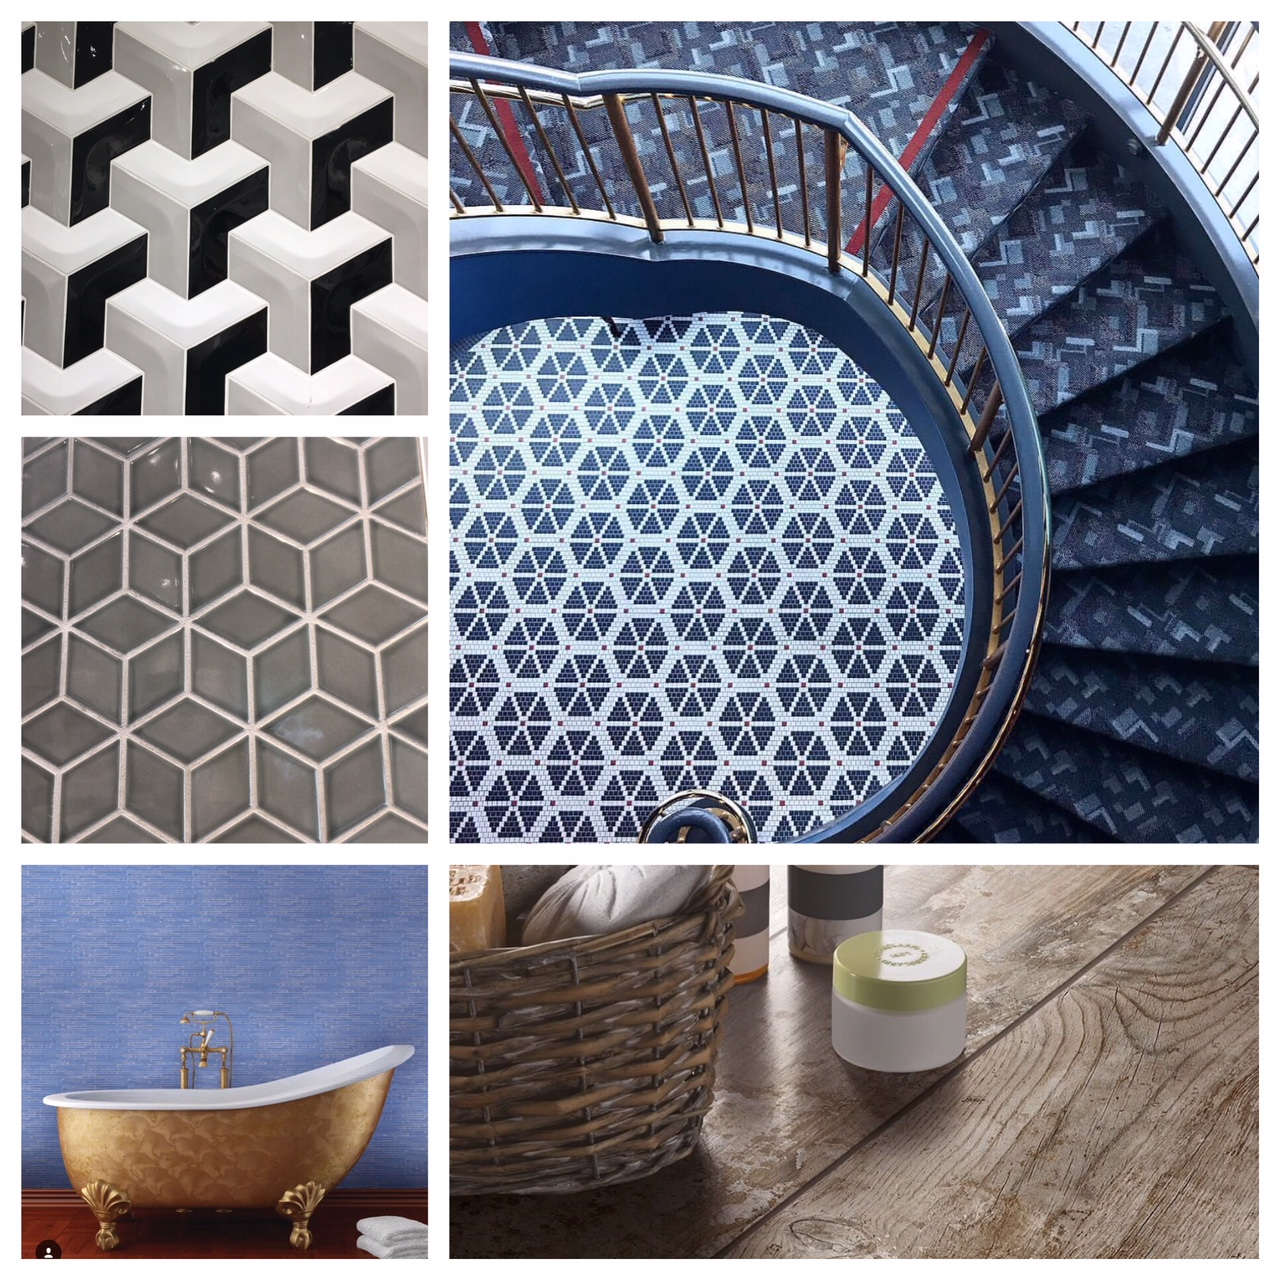 2018 Tile Trends